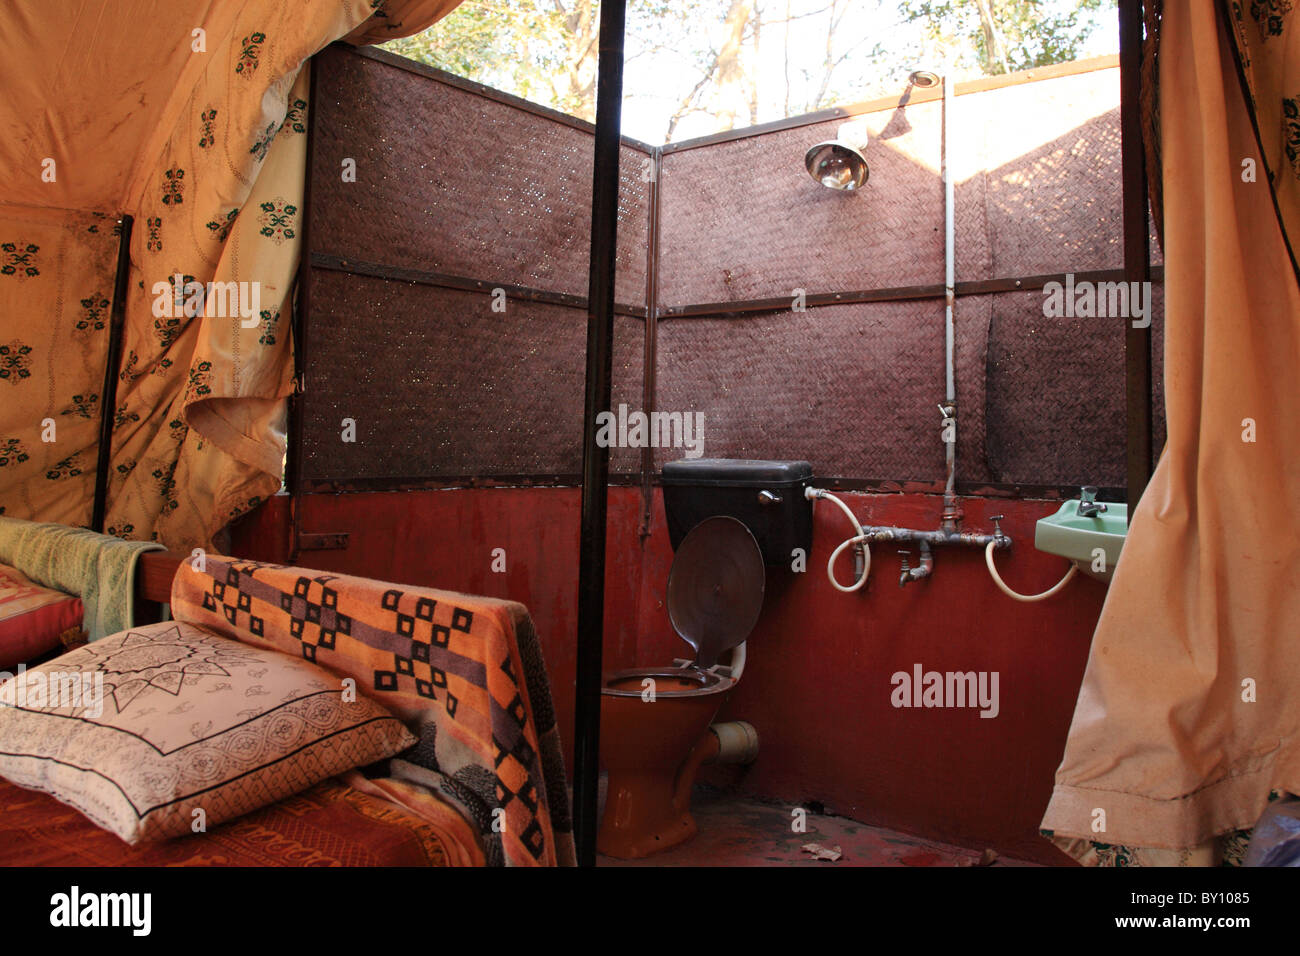 Bathroom inside a jungle tent Goa India & Bathroom inside a jungle tent Goa India Stock Photo Royalty Free ...